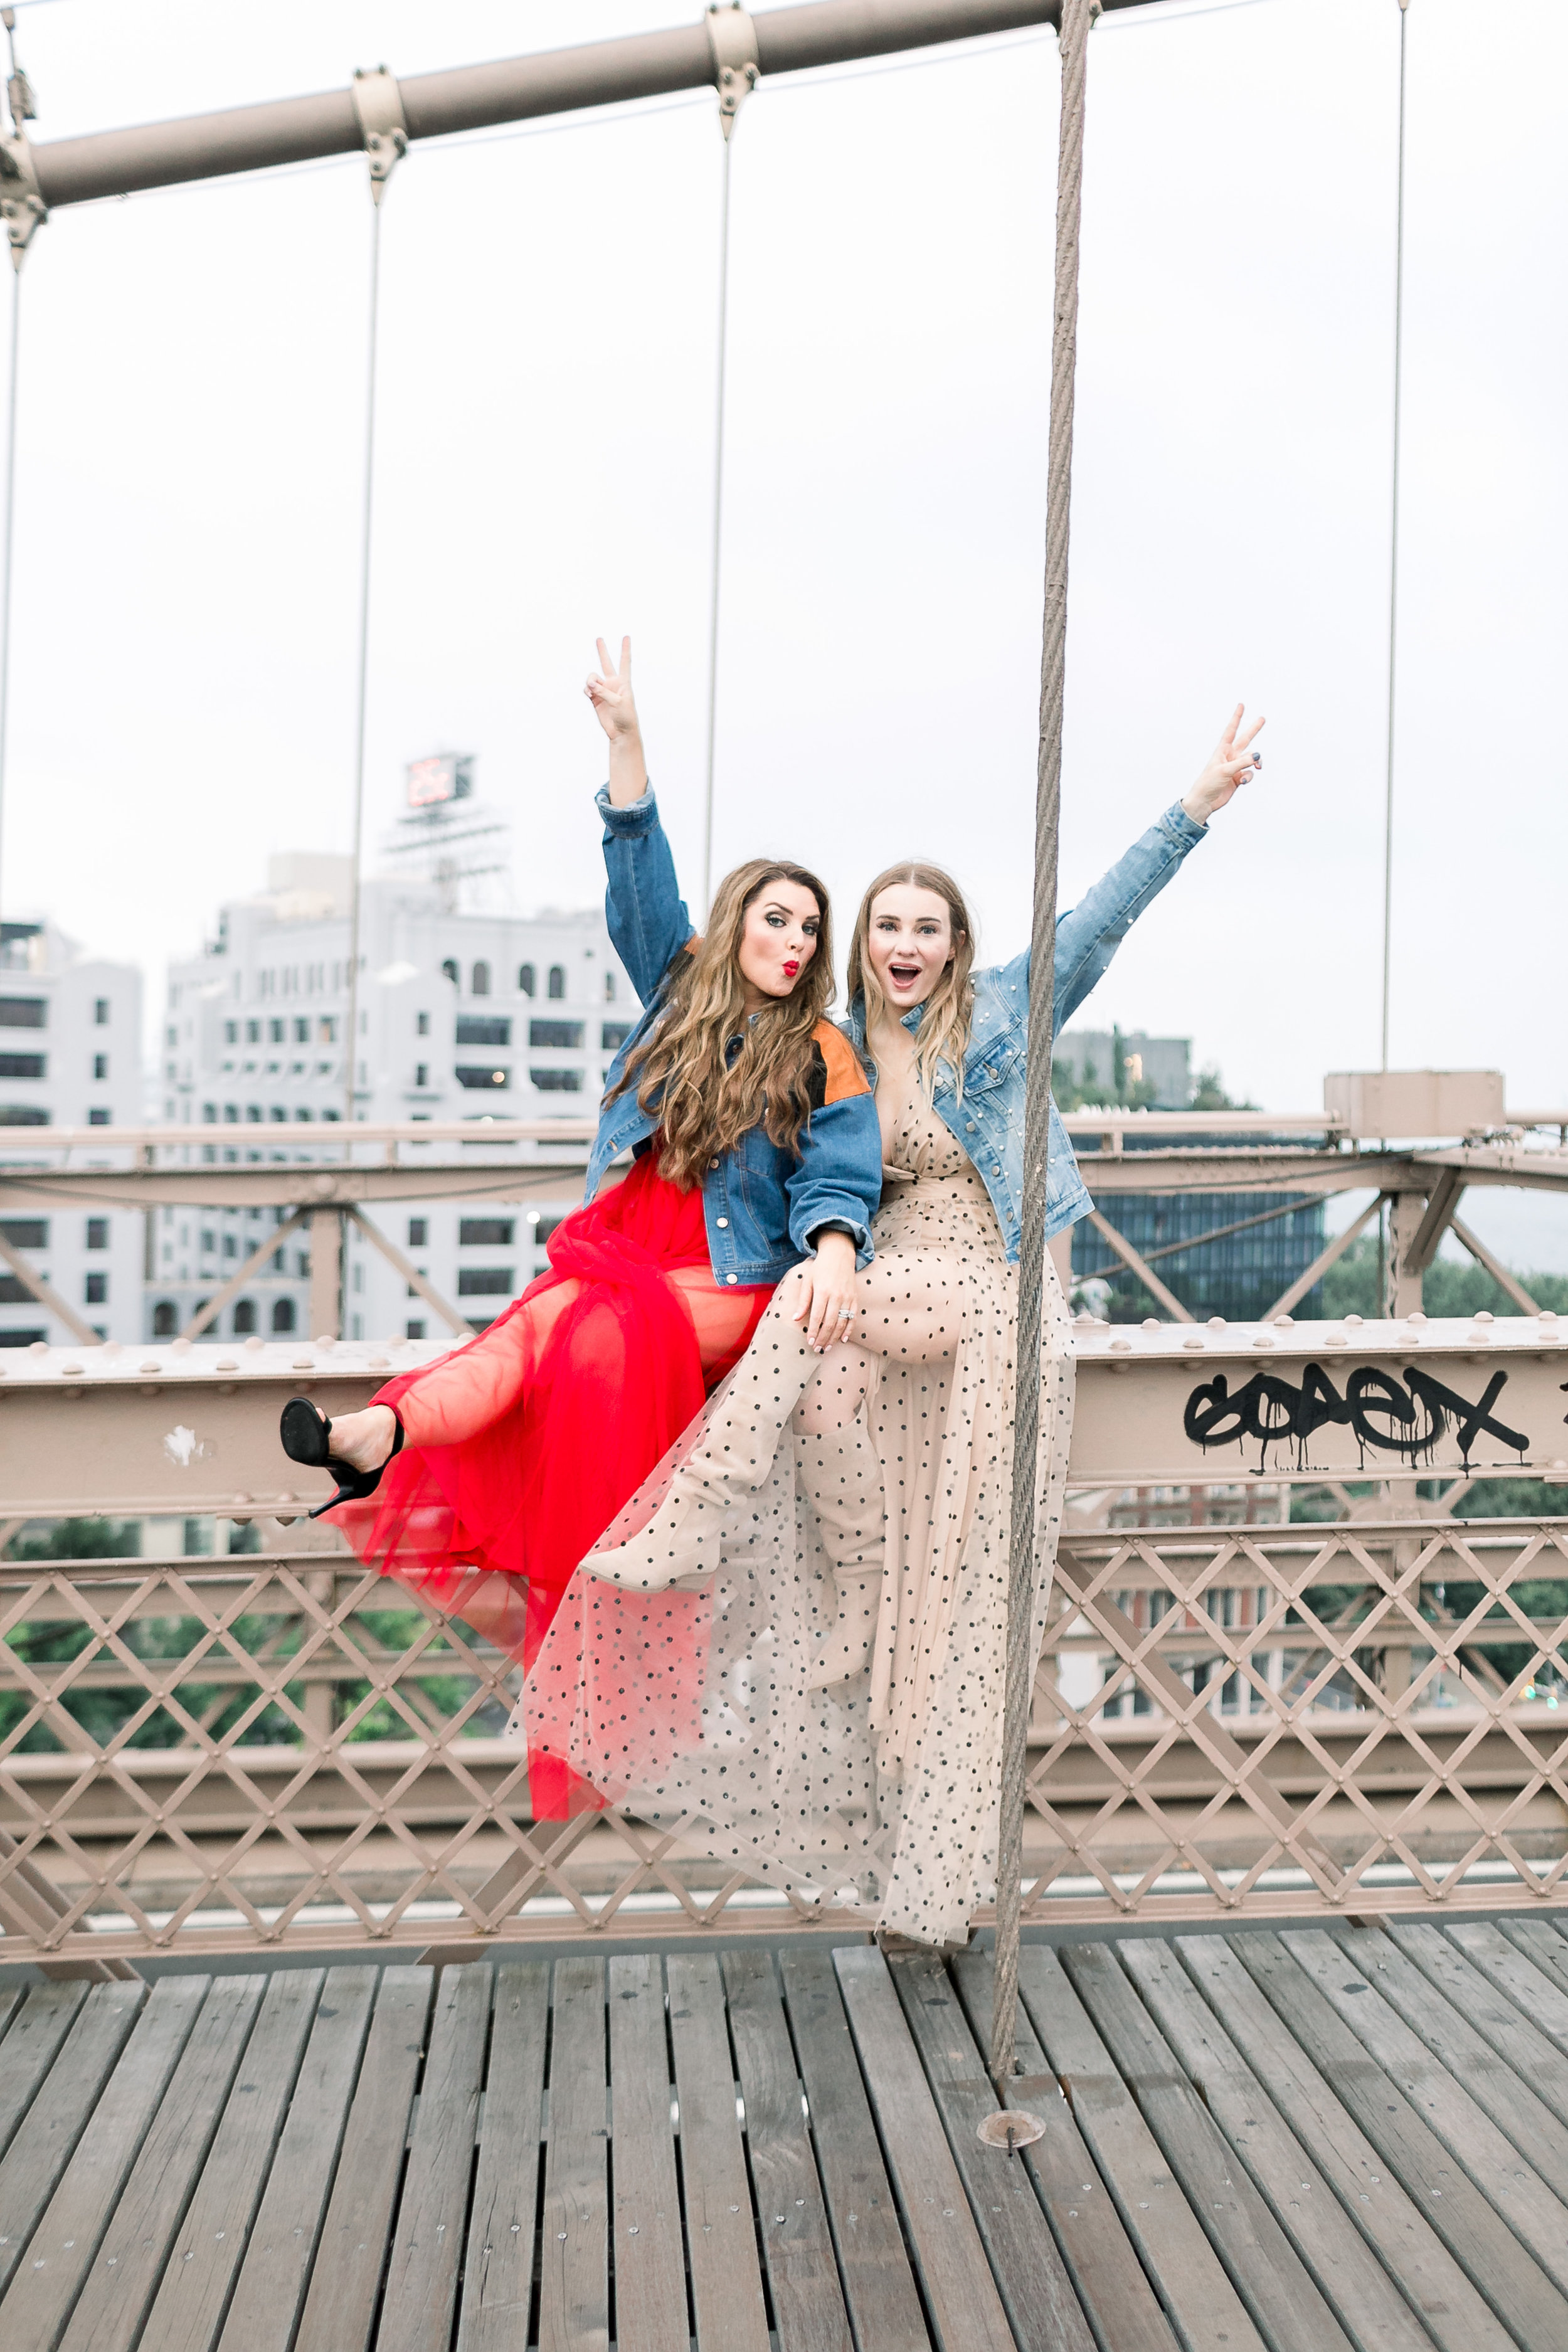 Collins Tuohy Smith & Megan Bonner on Brooklyn Bridge by Mary Kate Steele Photography